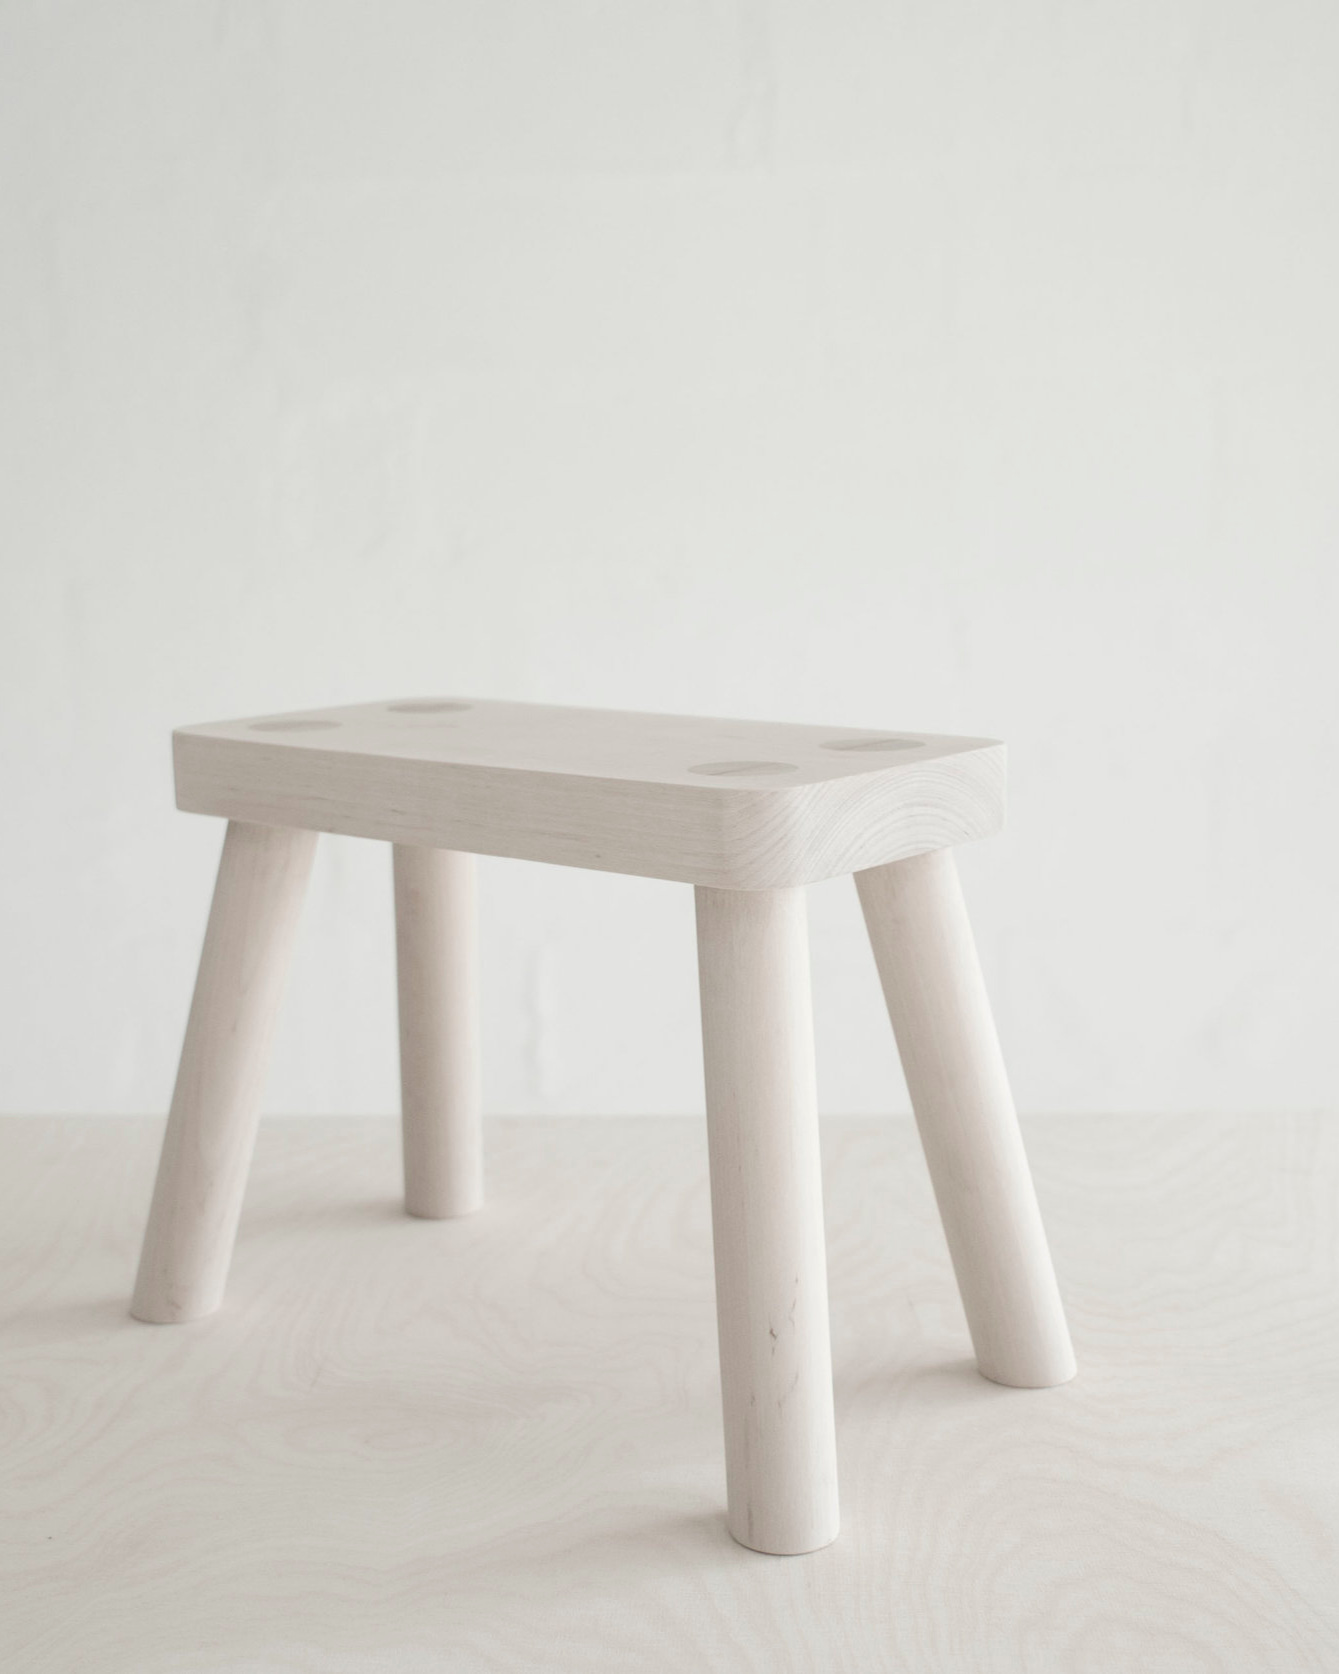 WEDGE STOOL - A classic stool with visible wedge joints.